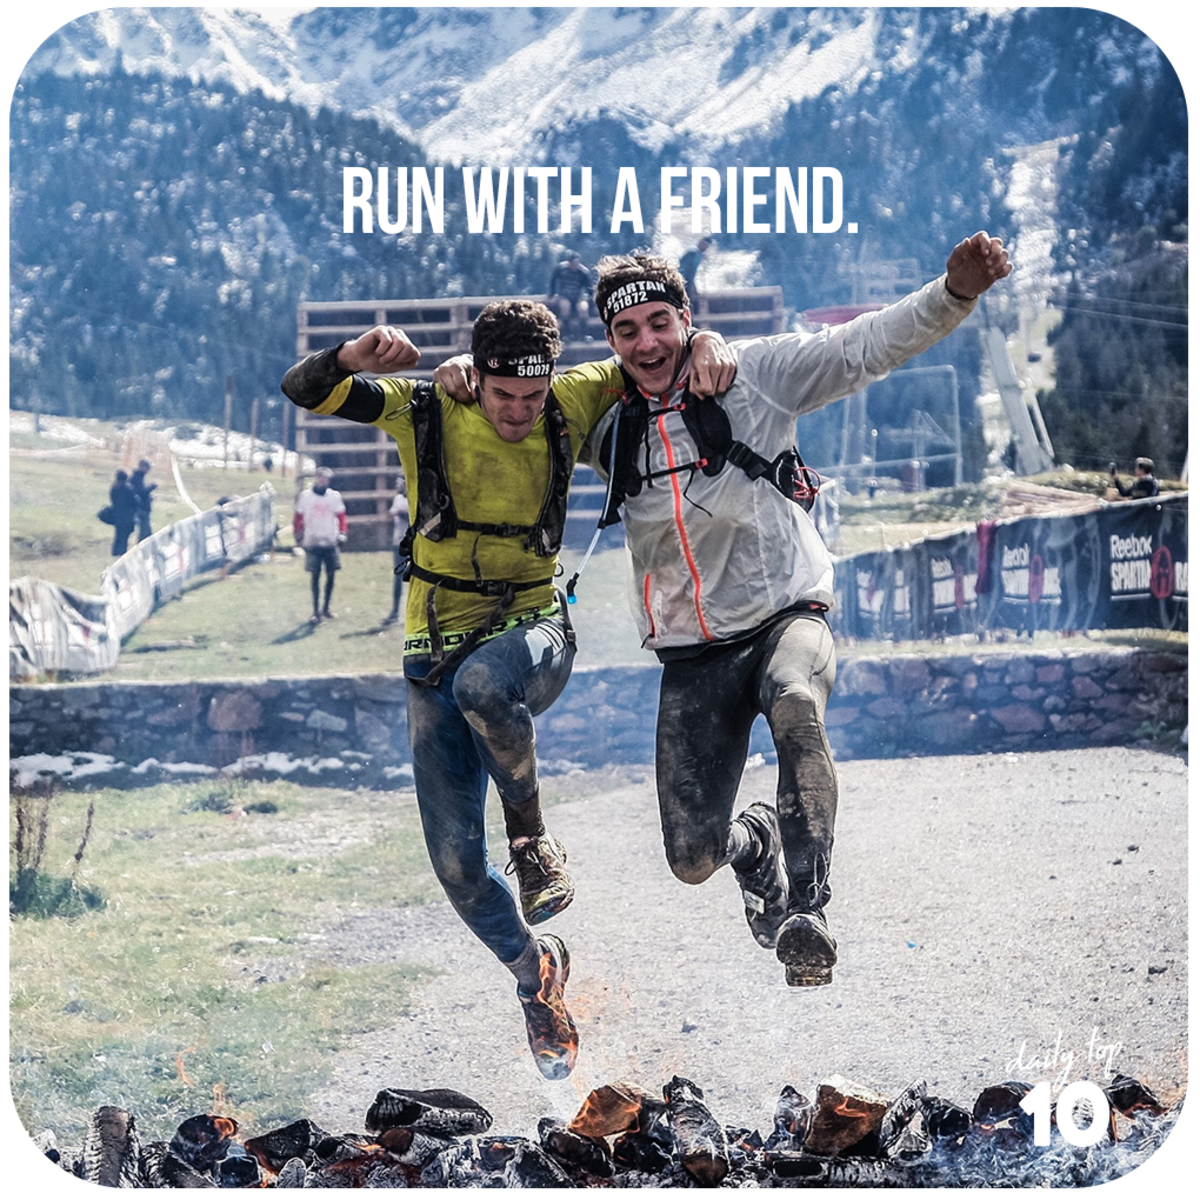 Run with a friend.